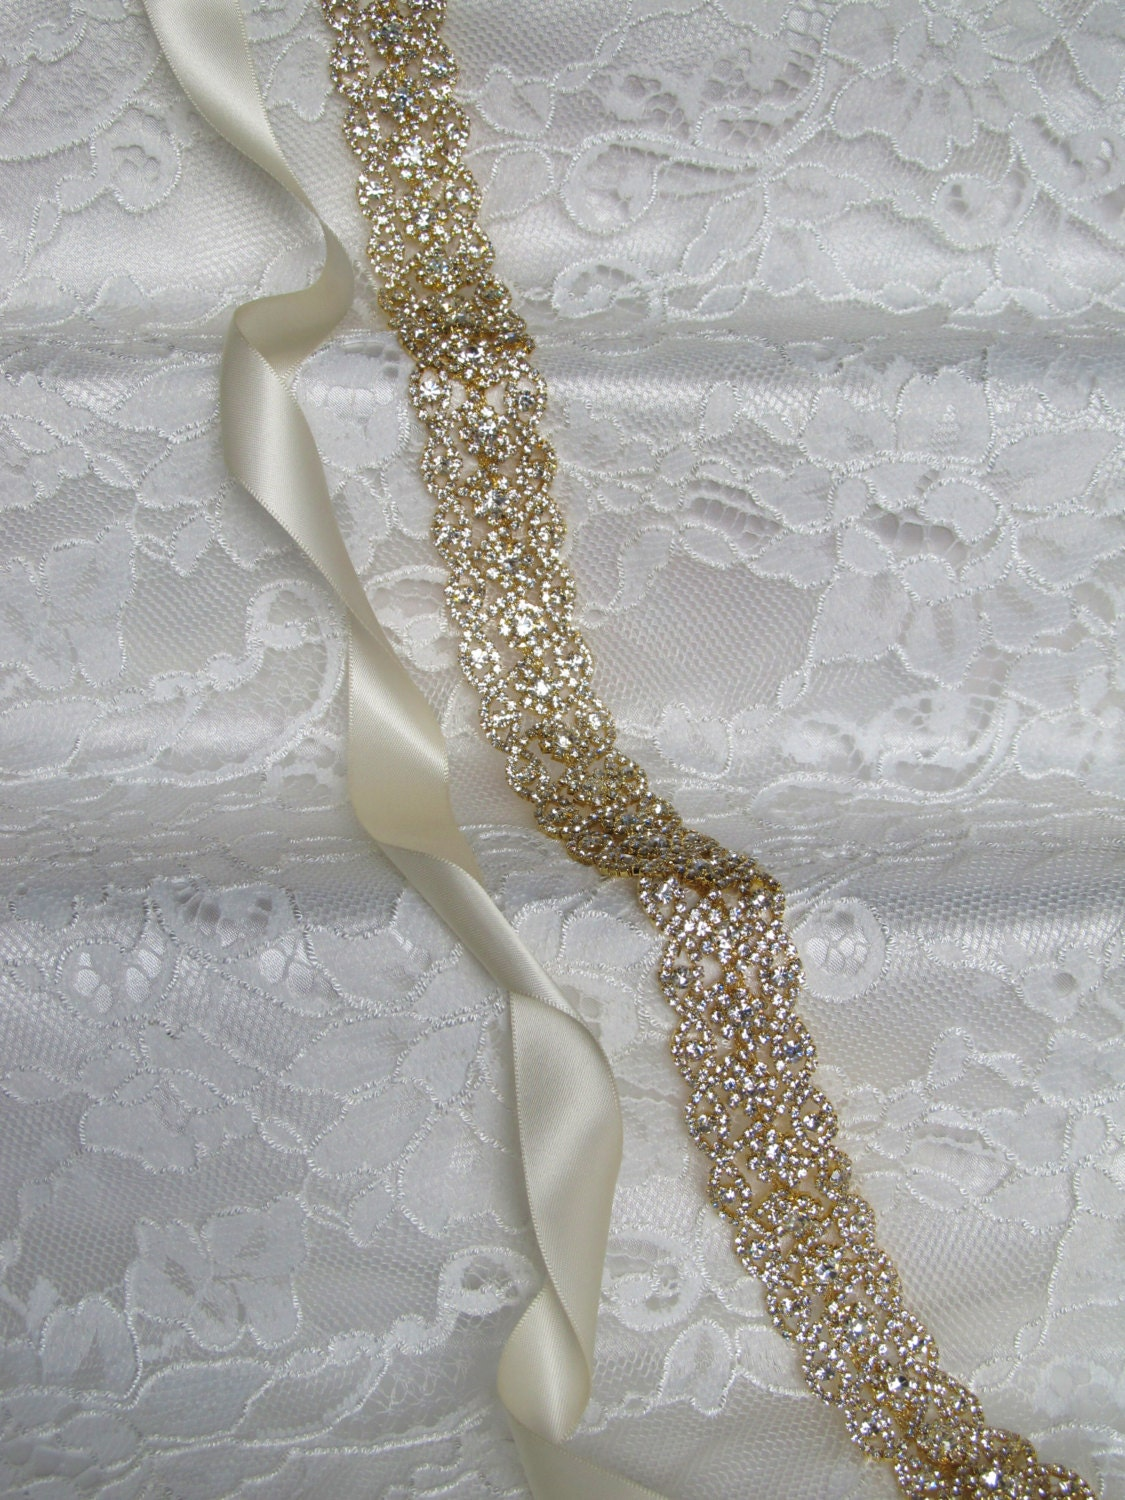 Gold Crystal Rhinestone Bridal Sash,Wedding sash,Bridal Accessories,Bridal Belt and sashes,Ribbon Sash,Style #51